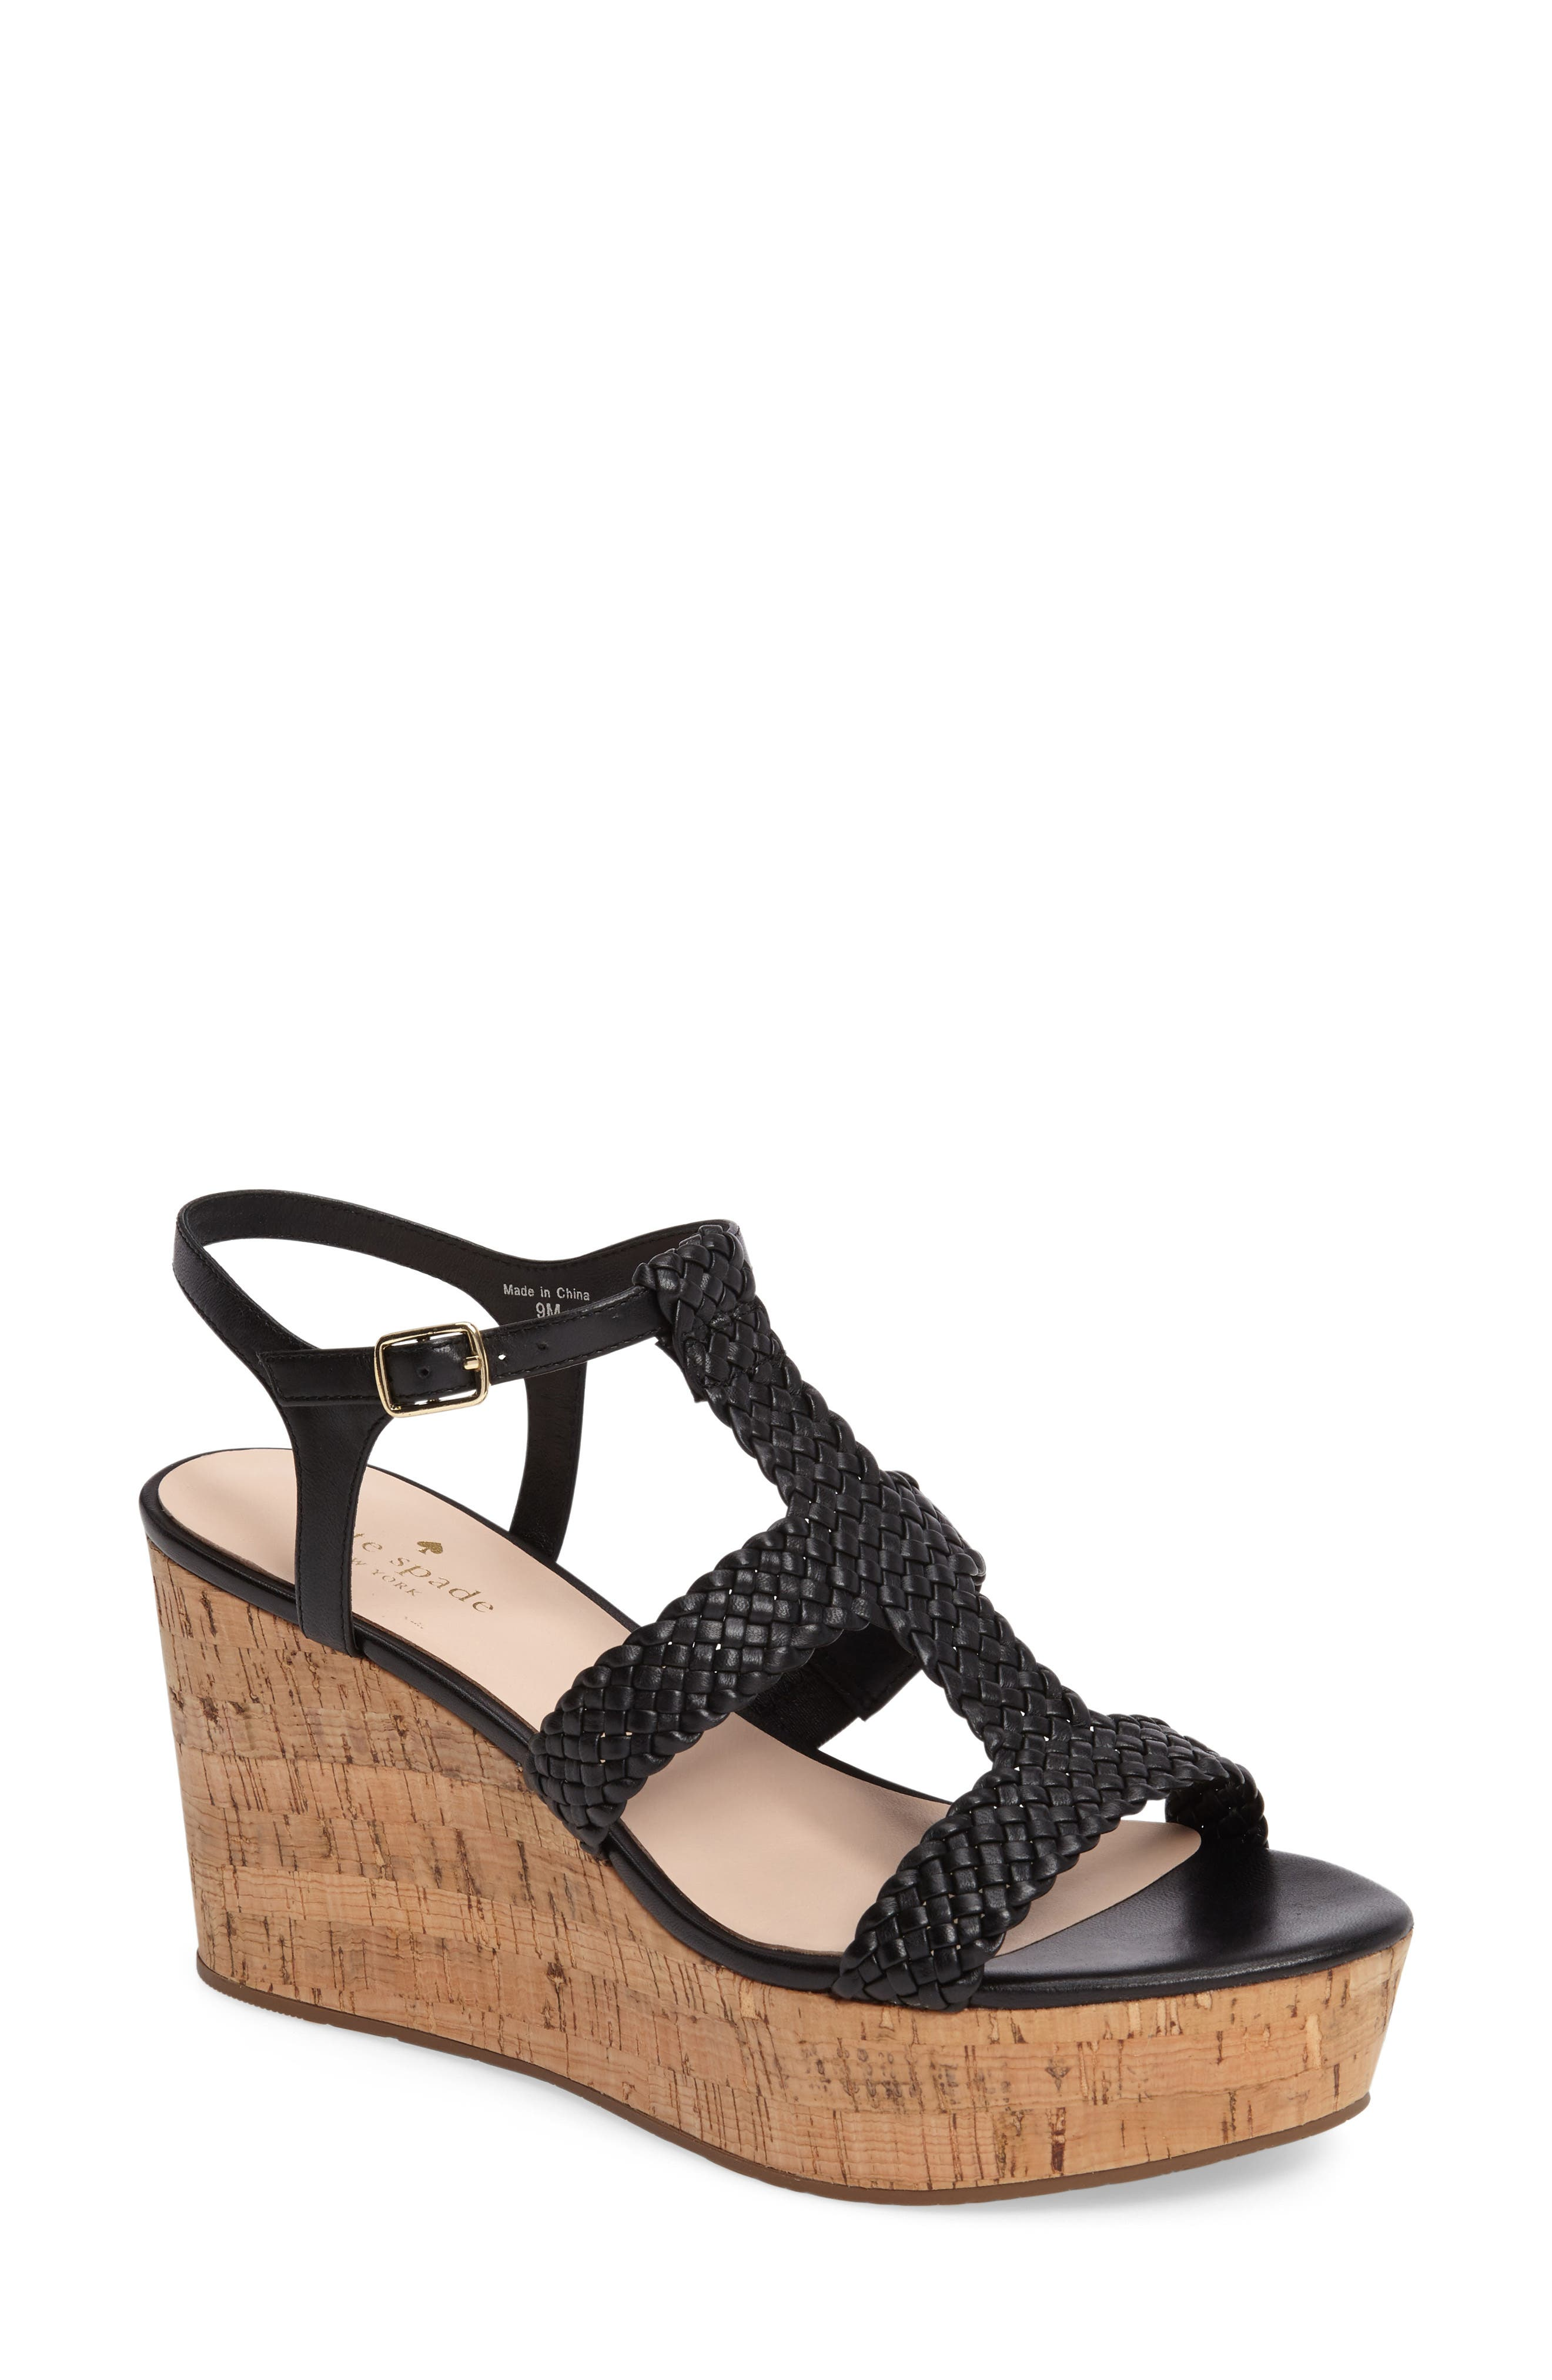 KATE SPADE NEW YORK, tianna platform sandal, Main thumbnail 1, color, 001